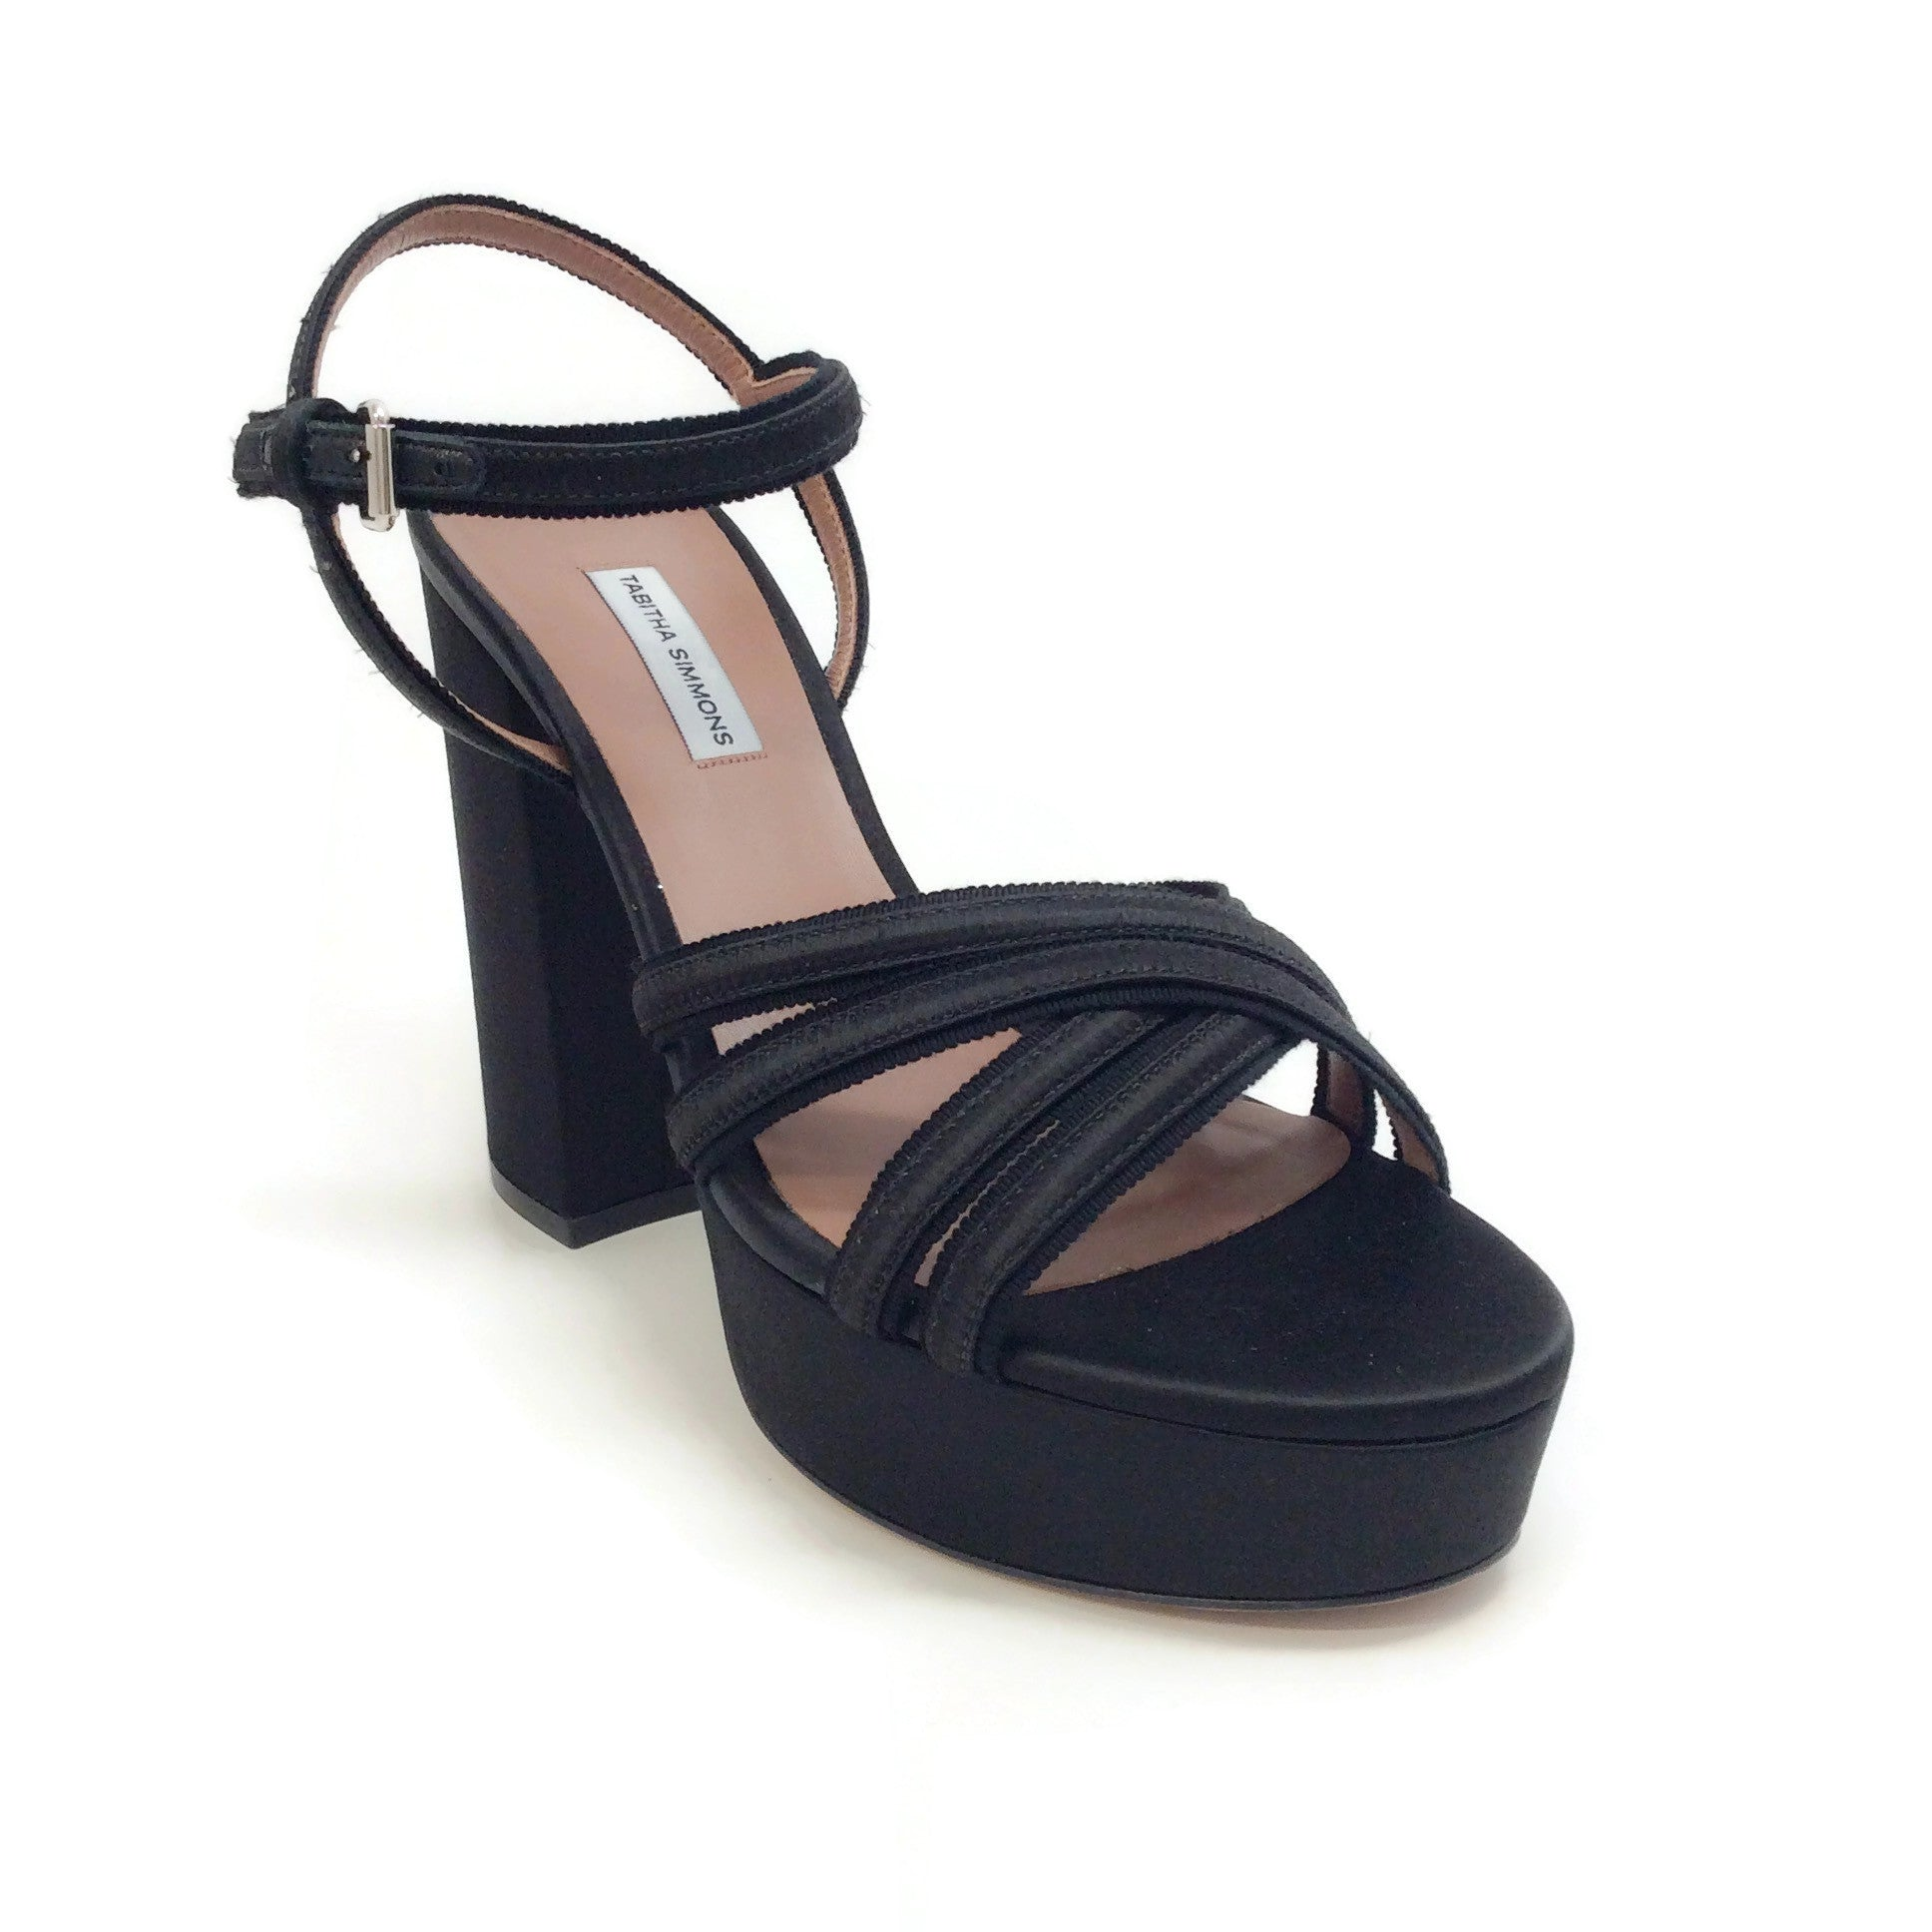 Tabitha Simmons Black Satin Hensley Platform Sandals